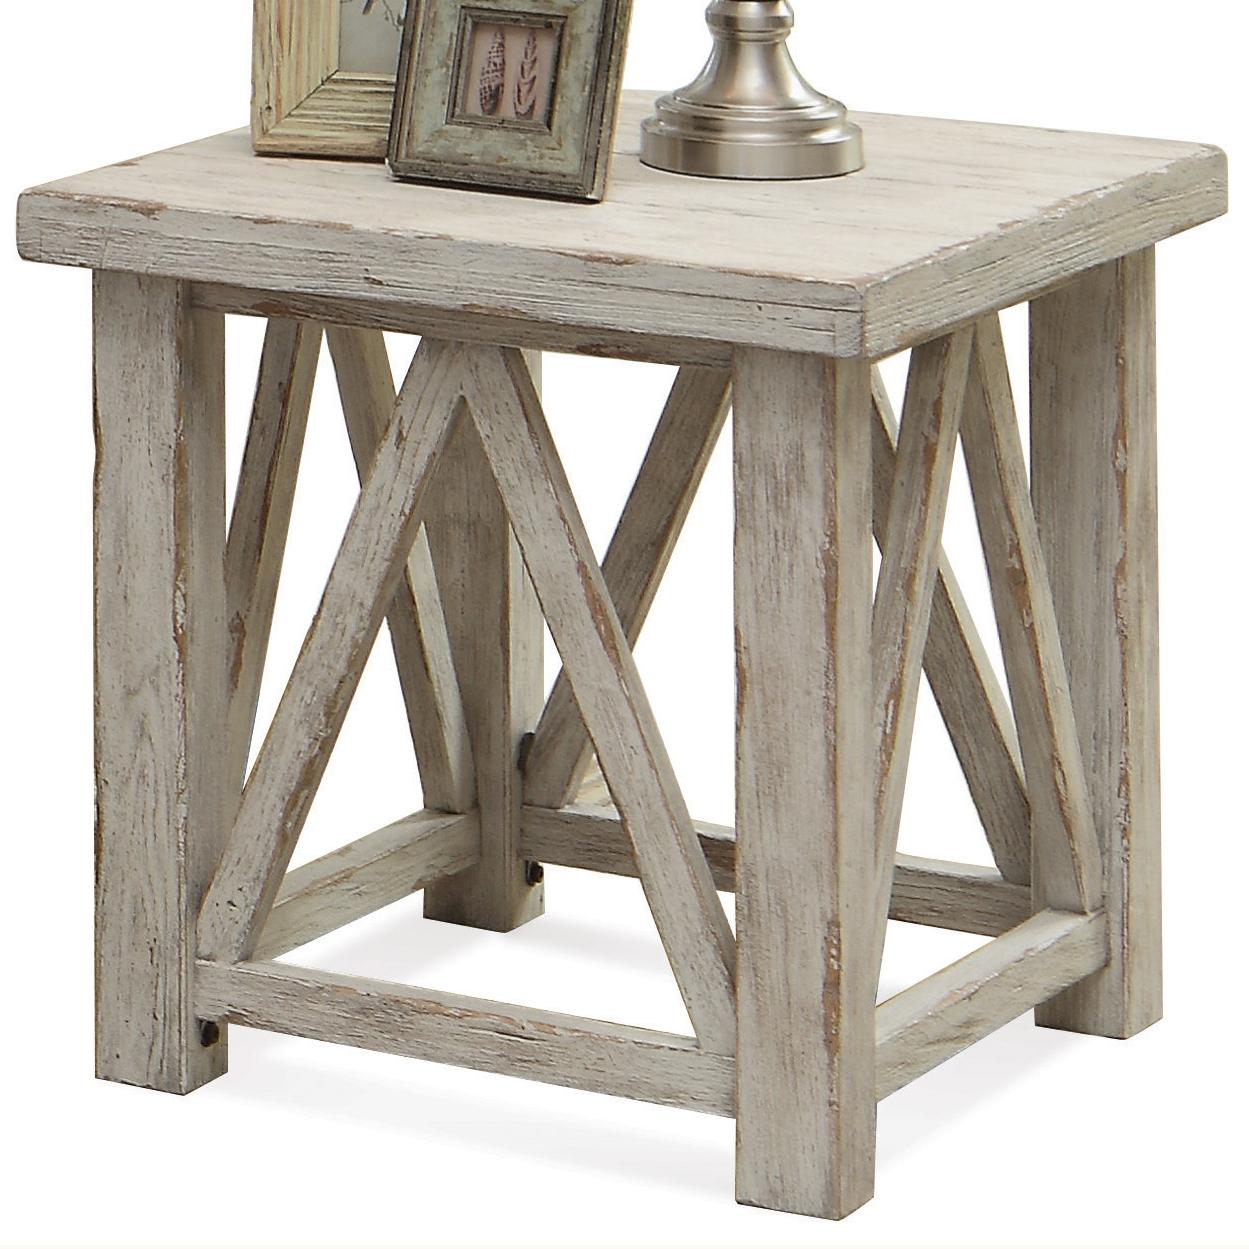 Charmant End Table With Light Distressing